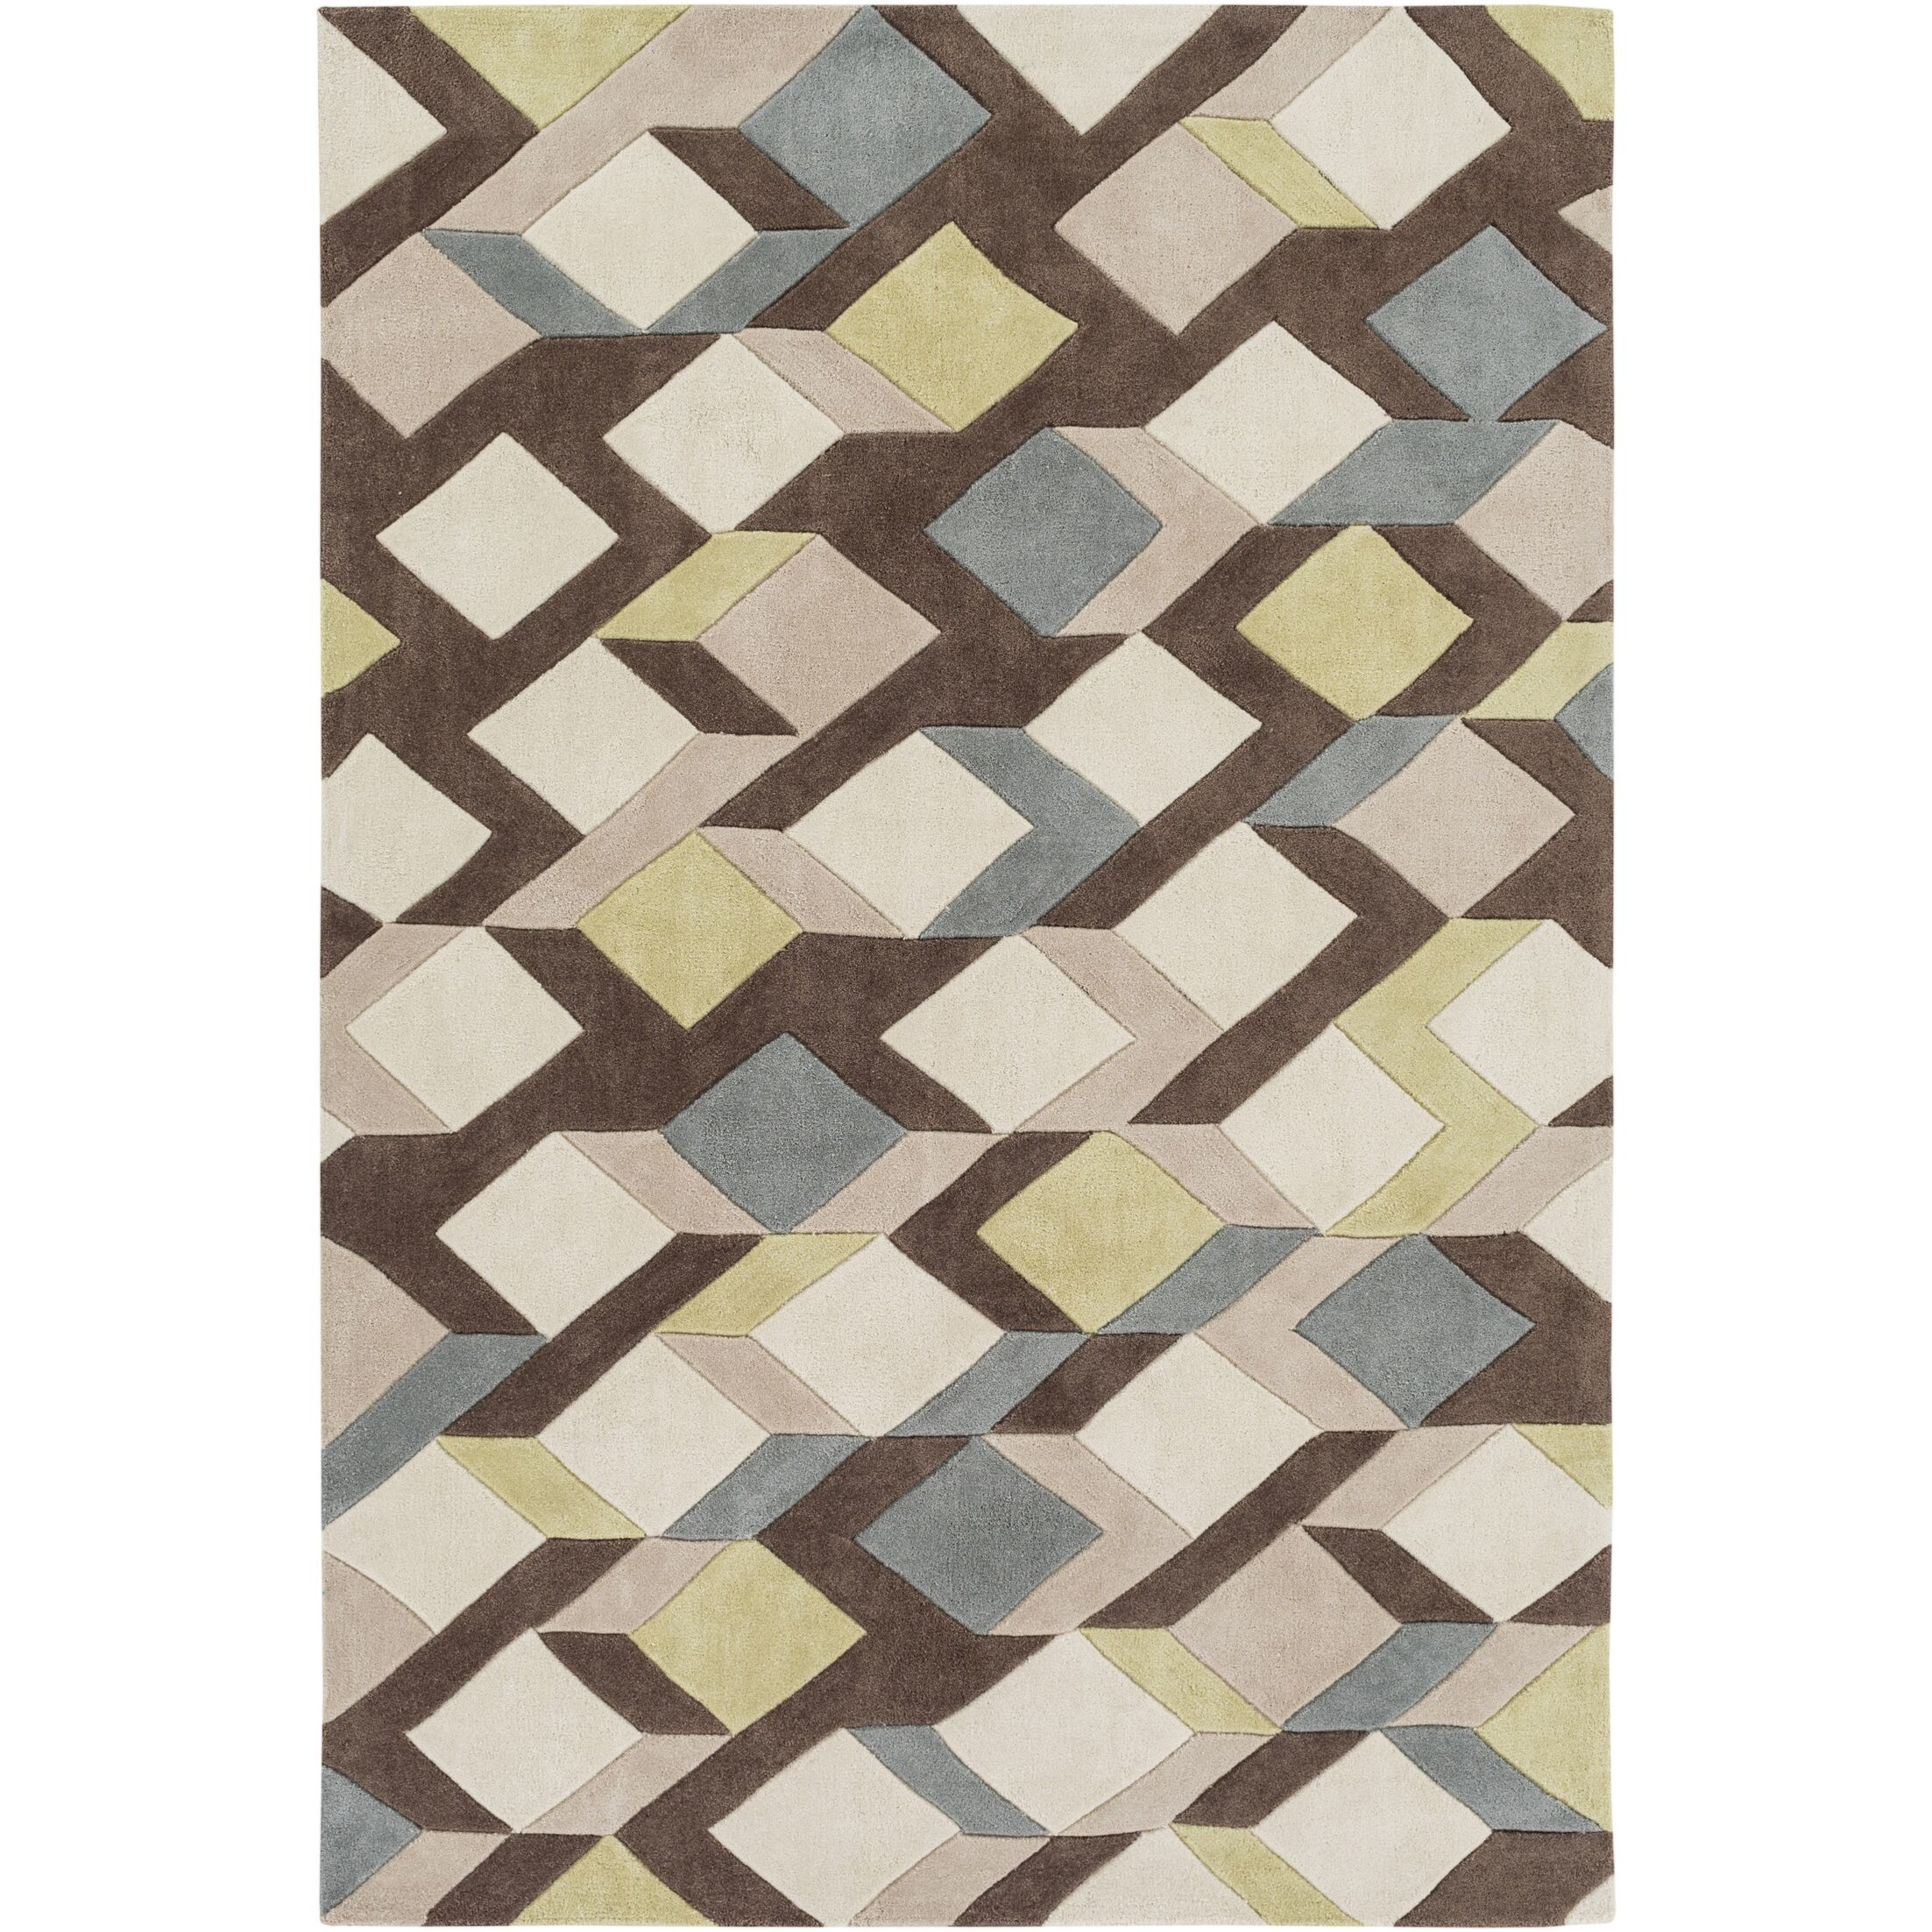 Conroy Hand-Tufted Area Rug Rug Size: Rectangle 3'6